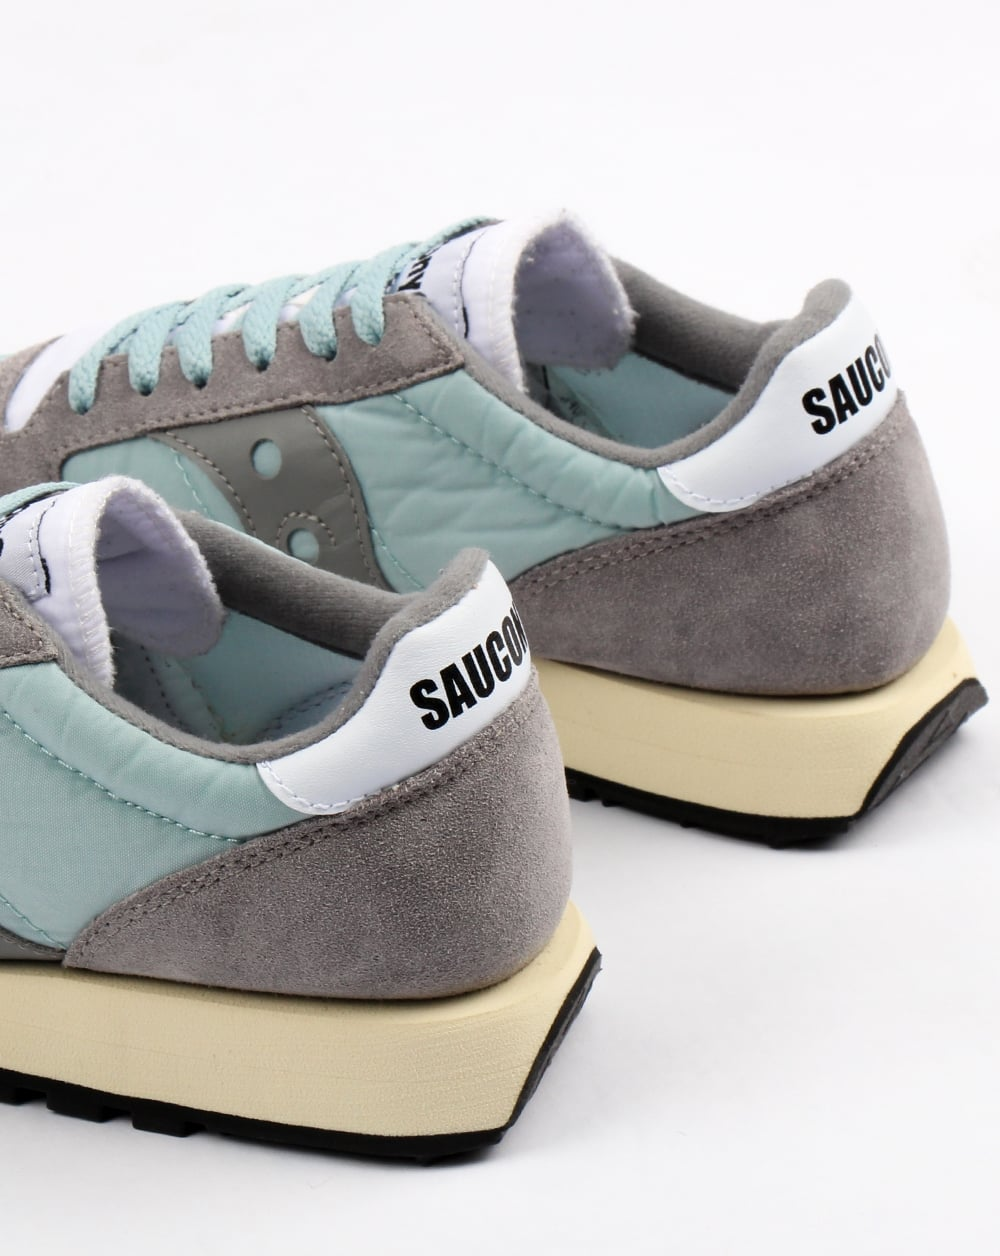 official photos aca9b 71d72 Saucony Jazz Original Vintage Trainers Grey/white